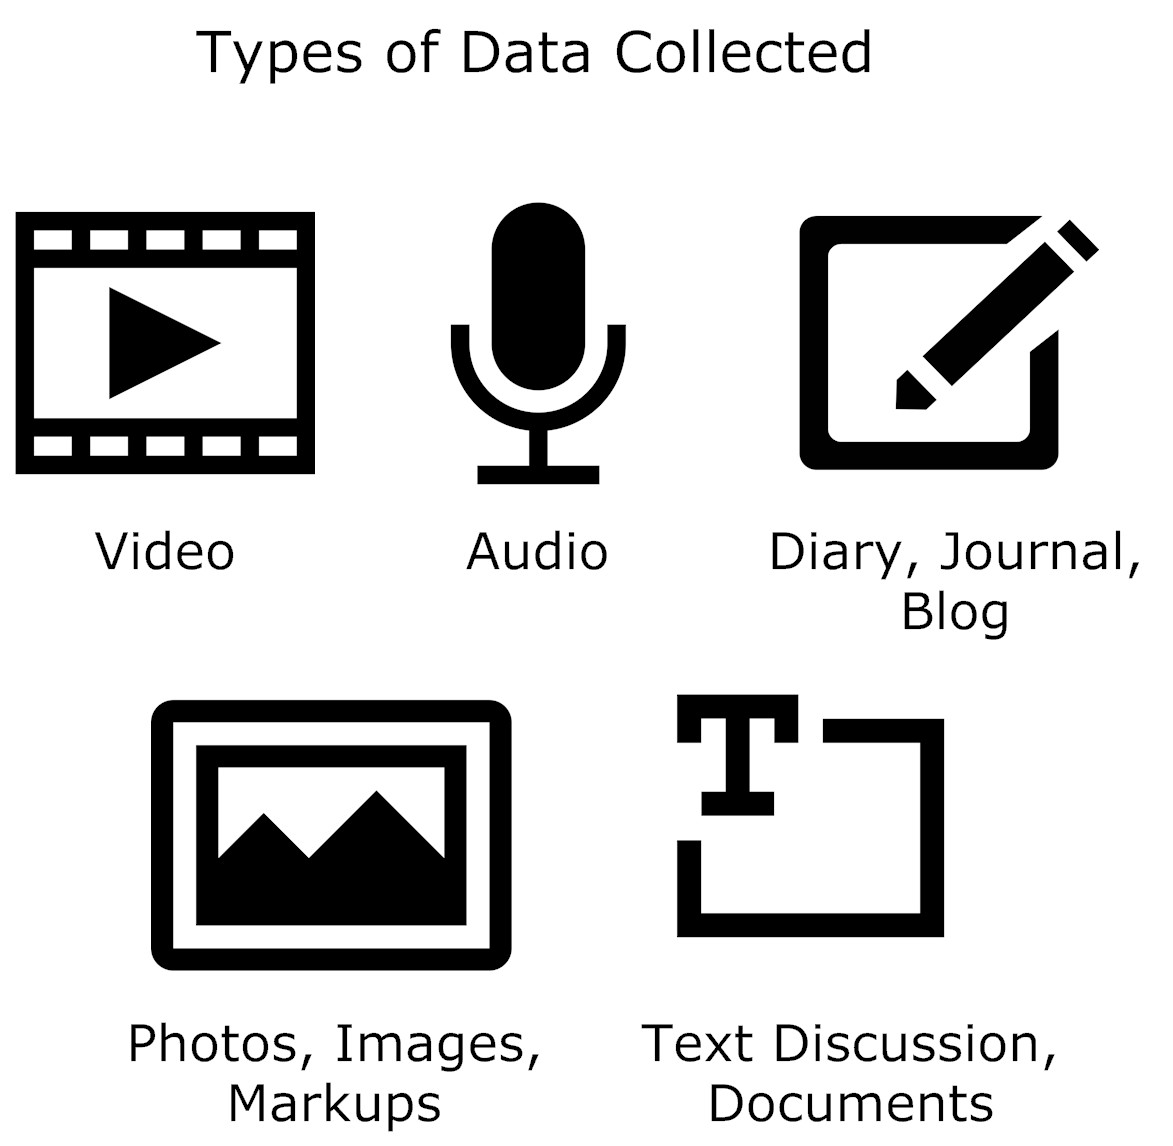 Types of data collected graphic